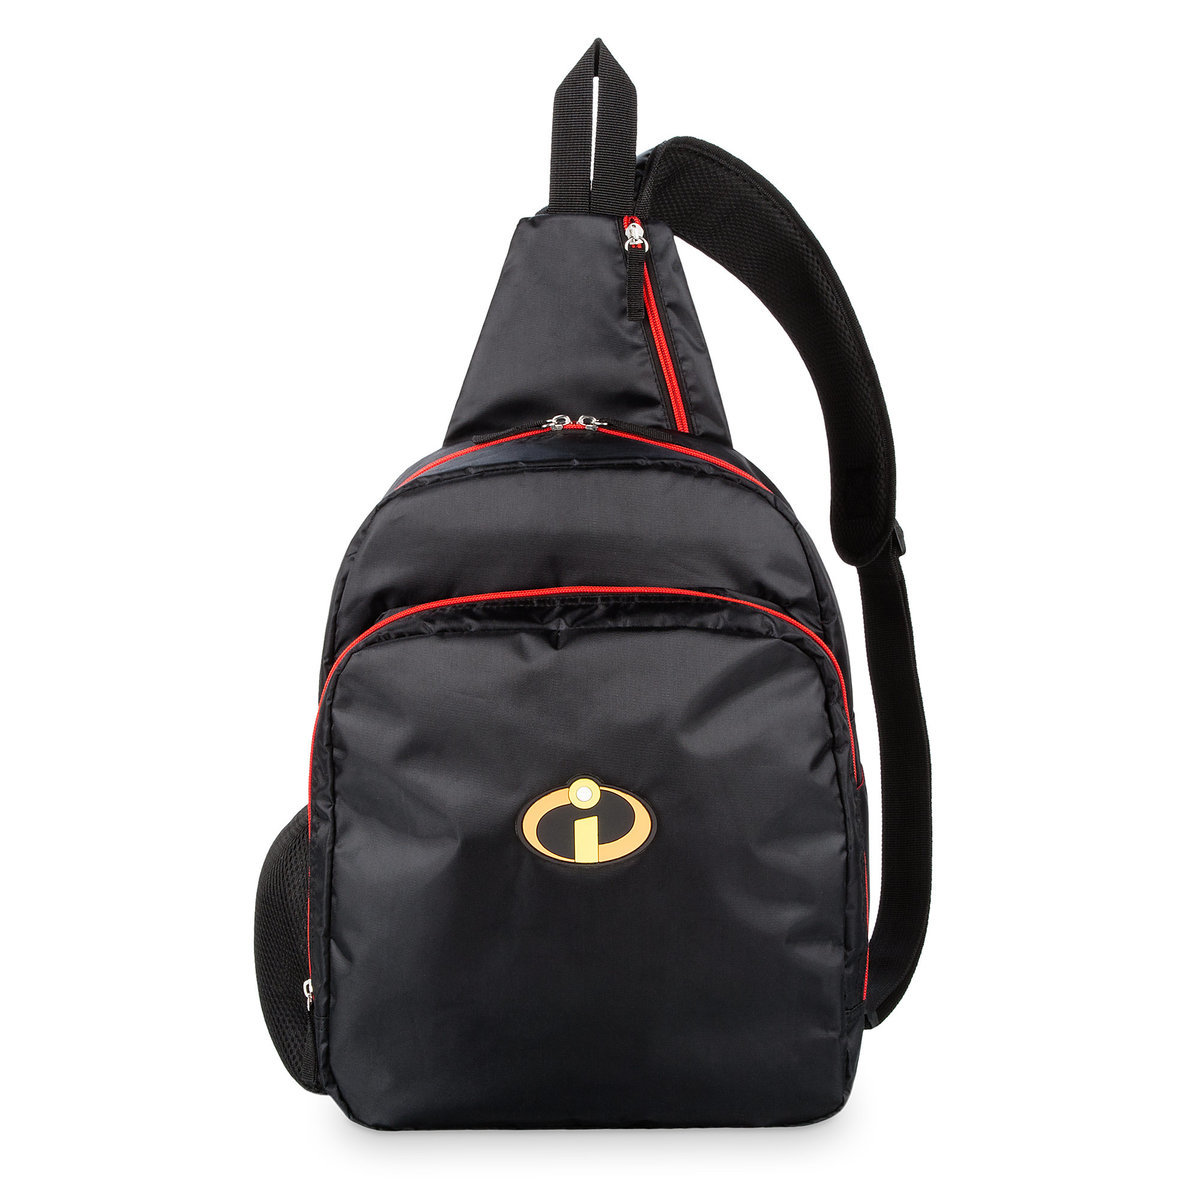 6bc68c9c579 Product Image of Incredibles 2 Large Sling Pack   1